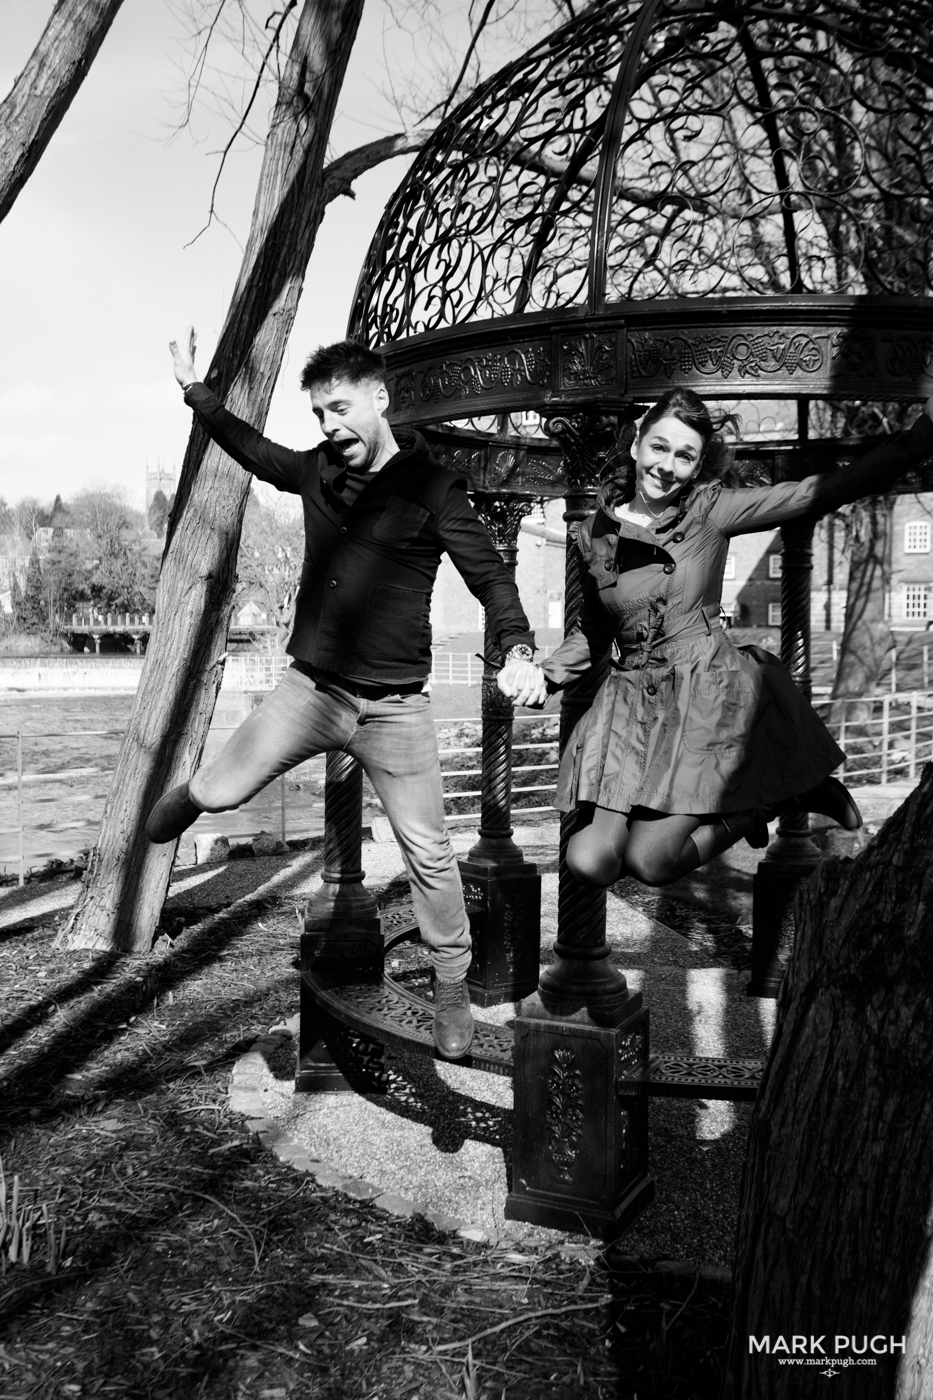 082 - Jo and Jordan - preWED engagement photography at The West Mill DE22 1DZ by www.markpugh.com Mark Pugh 2.JPG